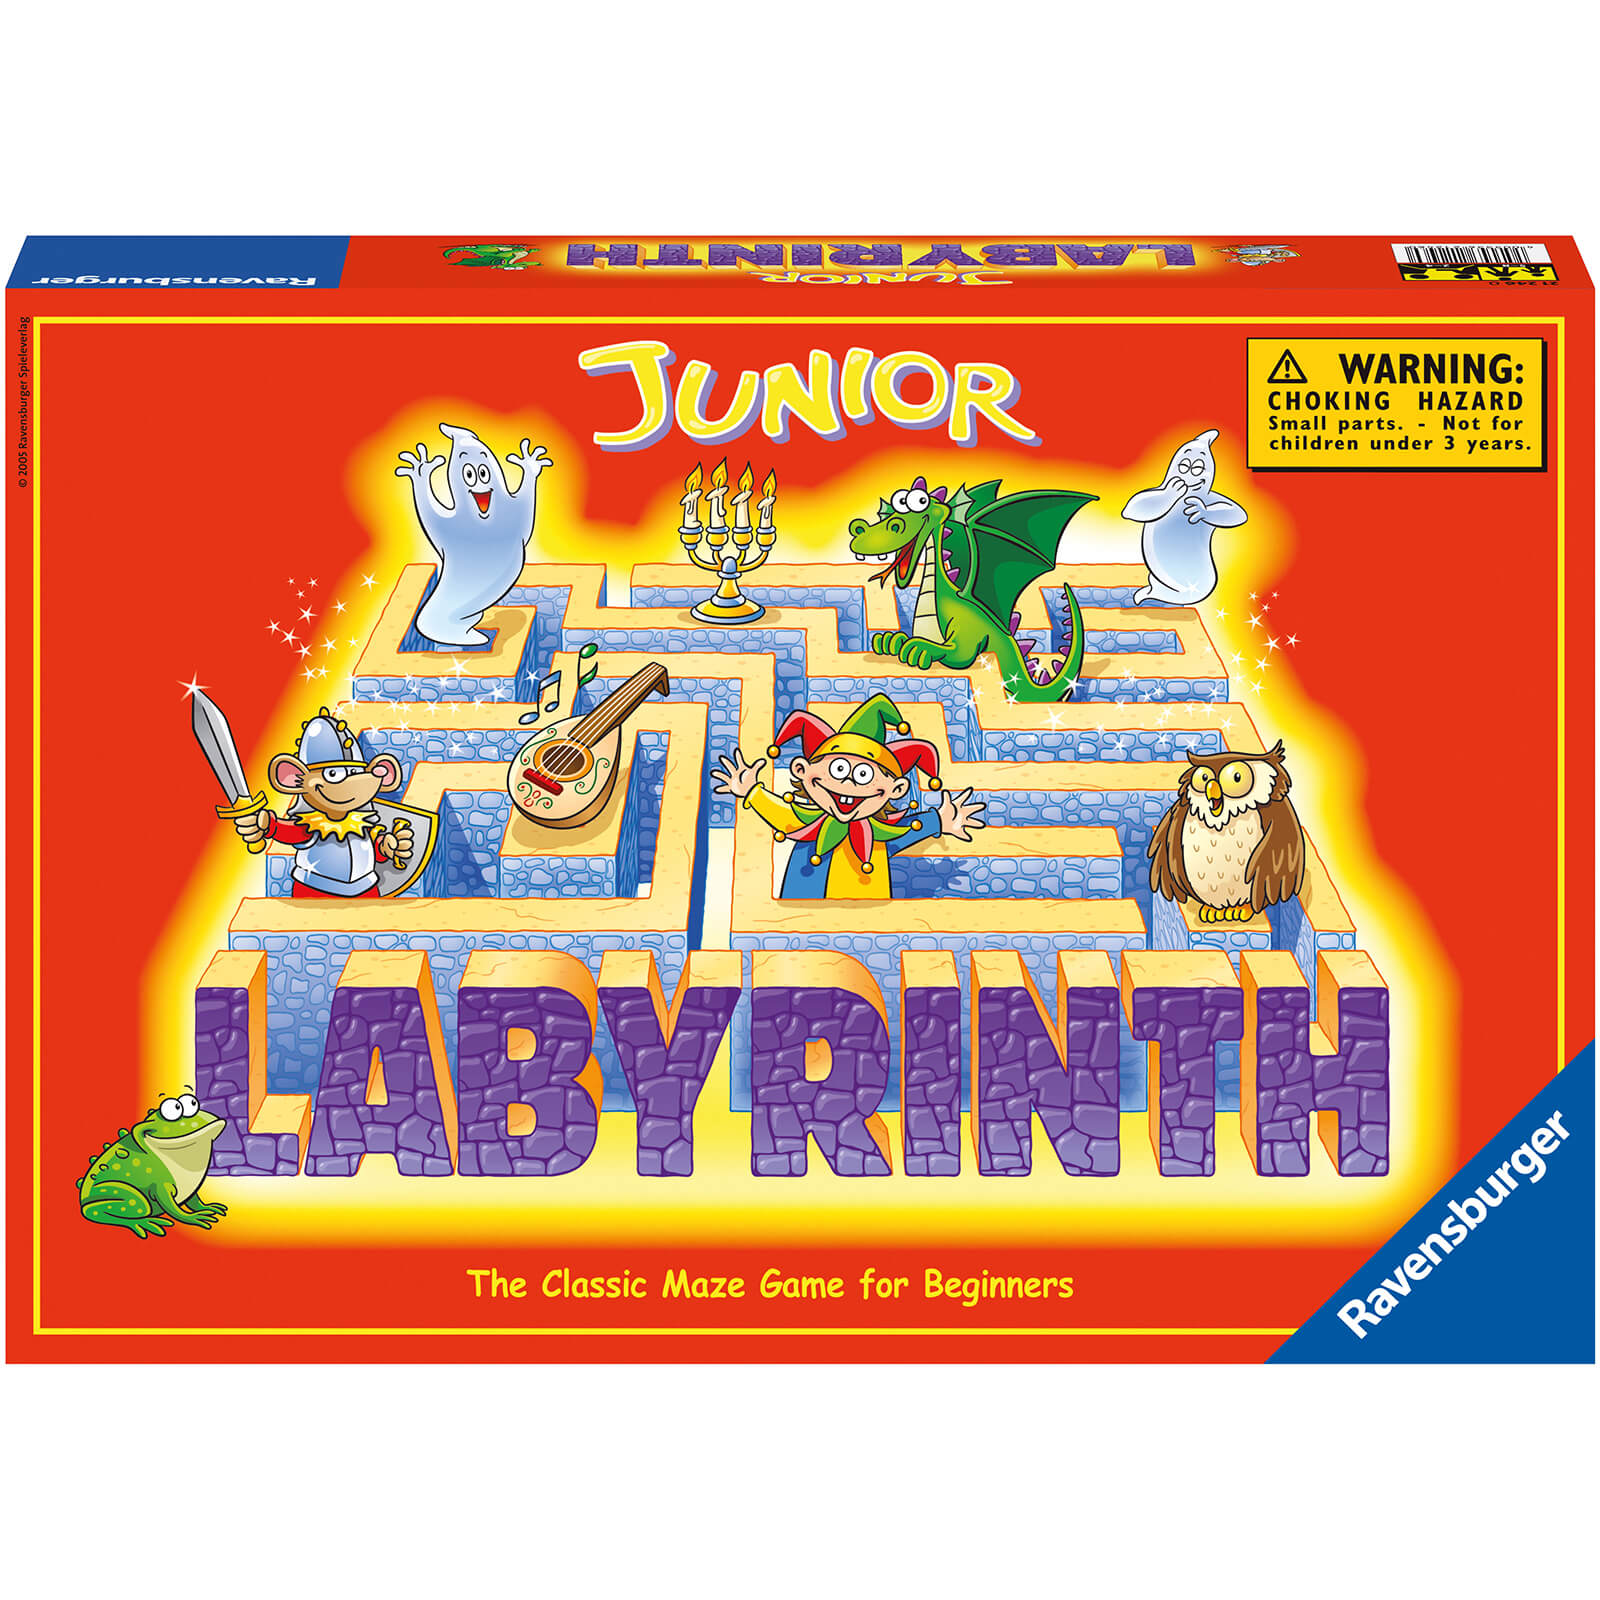 Image of Ravensburger Labyrinth Junior Board Game